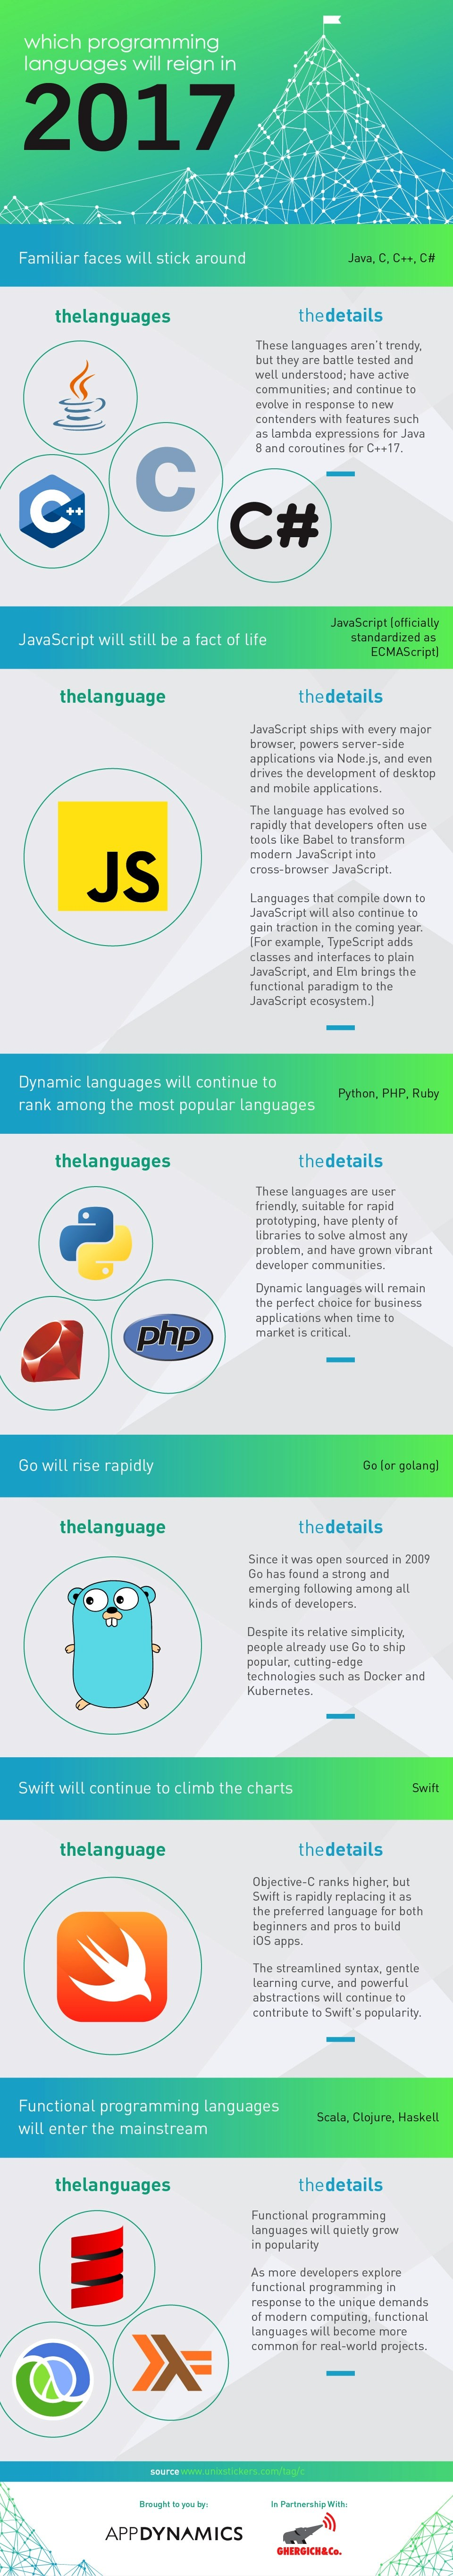 Latest Popular Programming Languages - Infographic